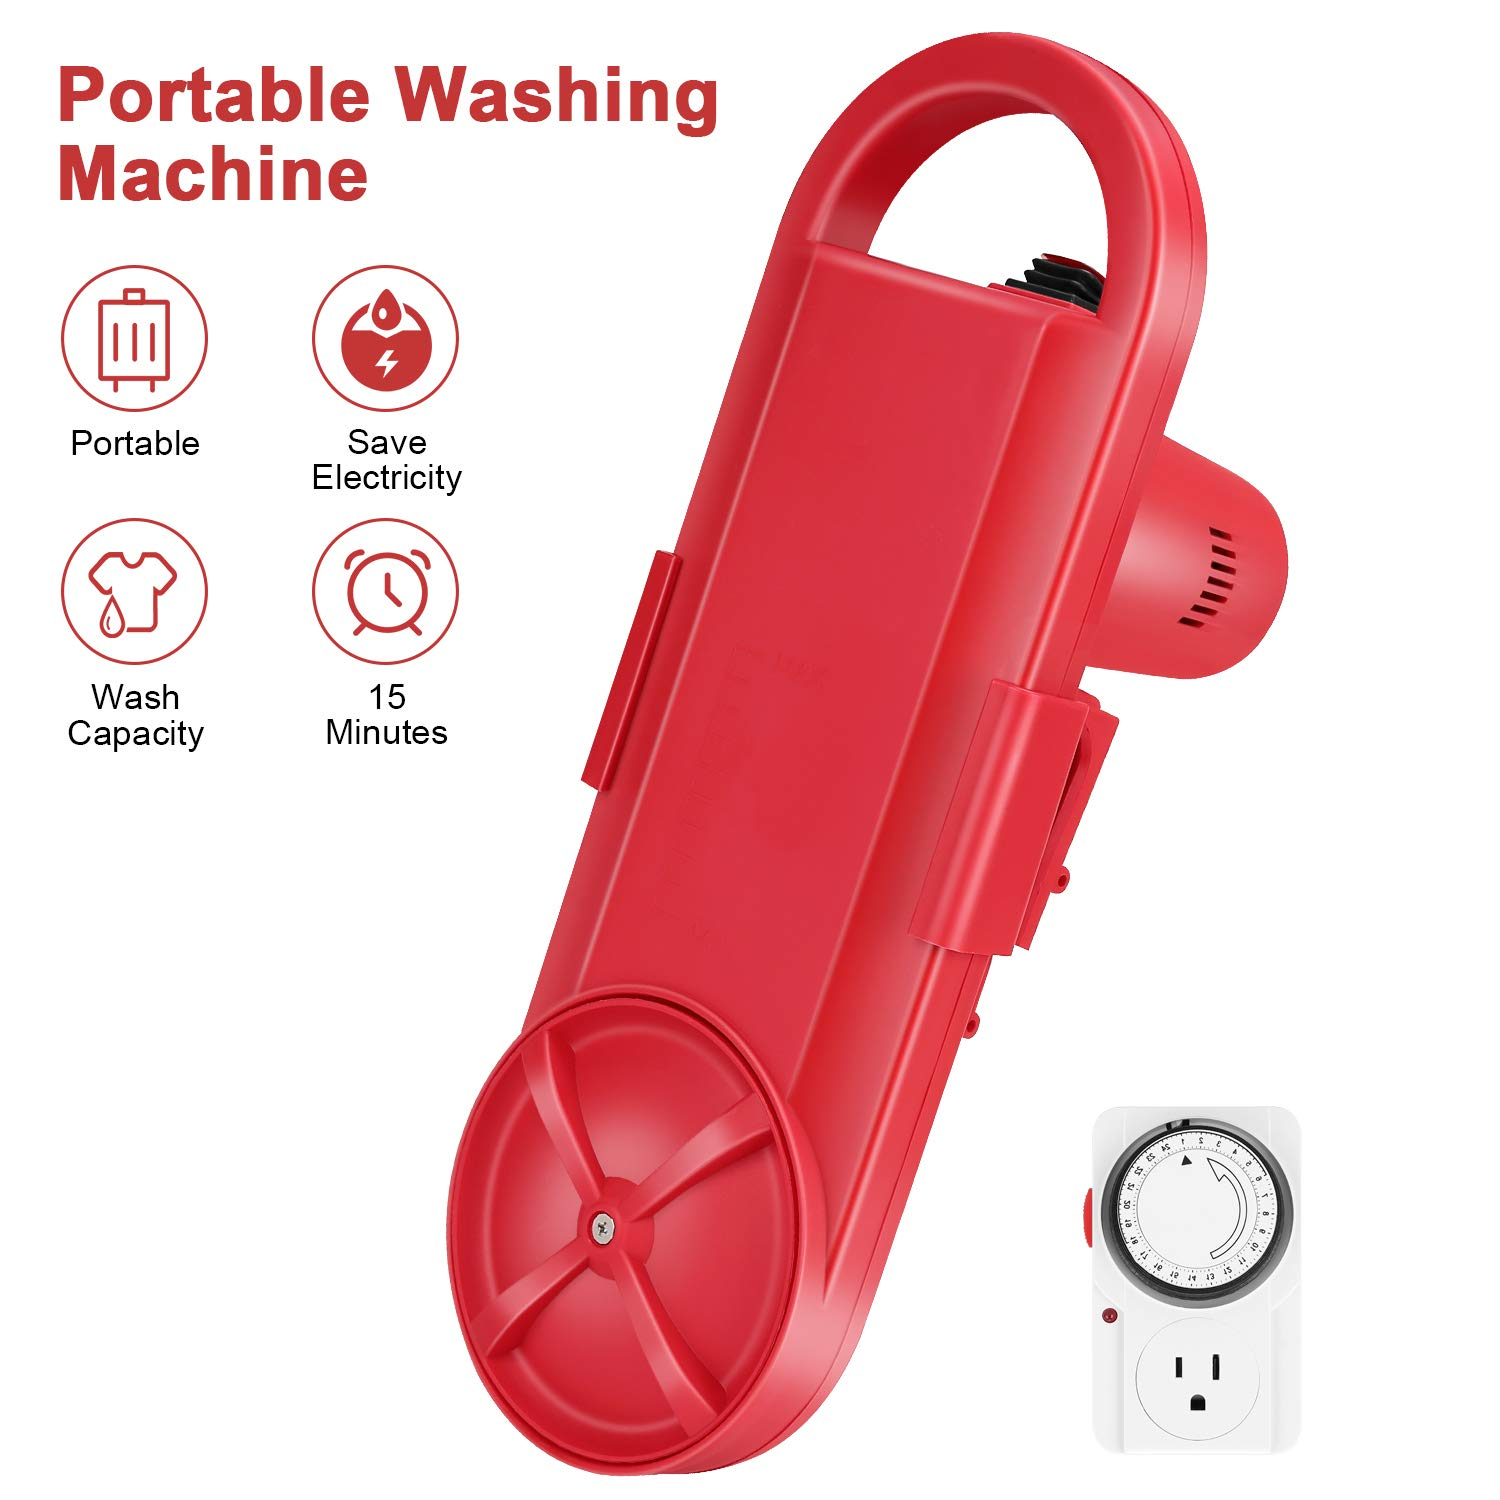 Portable Washing Machine - Mini Cleaning Tool for Personal Use, Underwear, Baby and Pet Clothes - Powerful Motor, Energy Saving Timer - Voltage: 100V, Power Watts: 190W - Red, 18.3x6.5x 5.9 Inch by Tonha